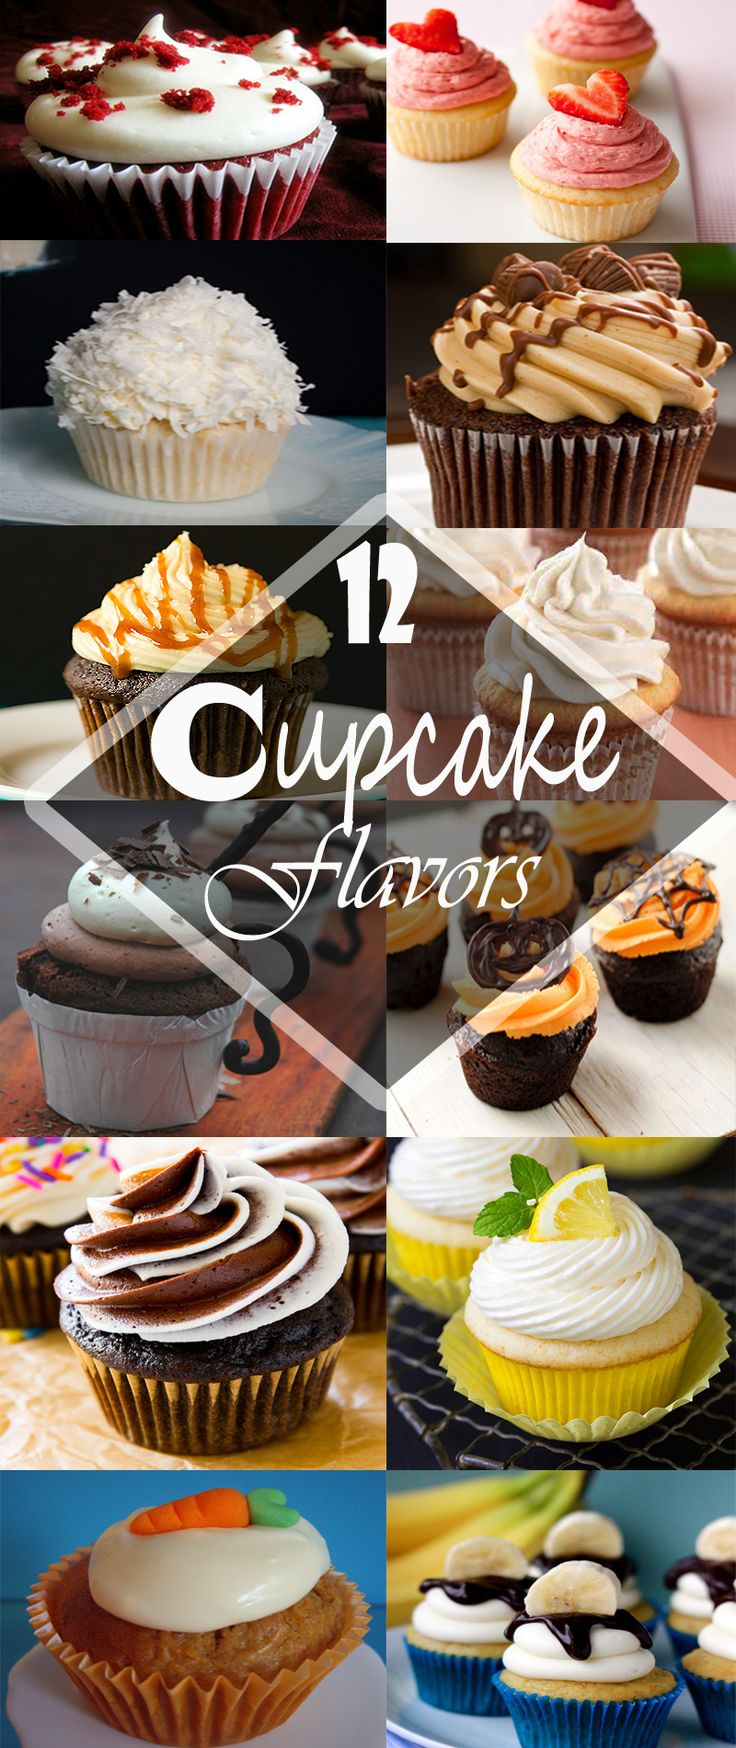 12 Most Edible #Cupcake Flavors Delighted By Foodie People.